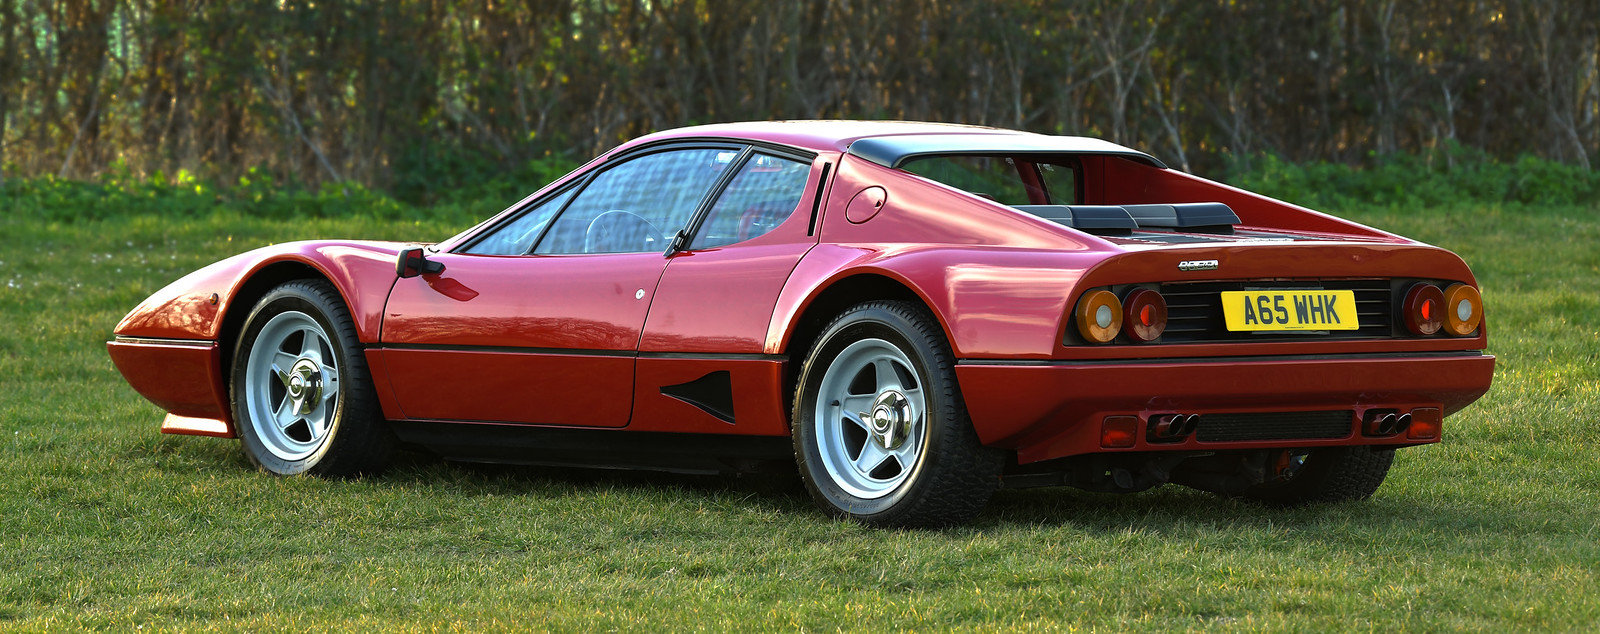 1984 Ferrari 512 BBi Coupé Coachwork by Pininfarina For Sale (picture 3 of 6)